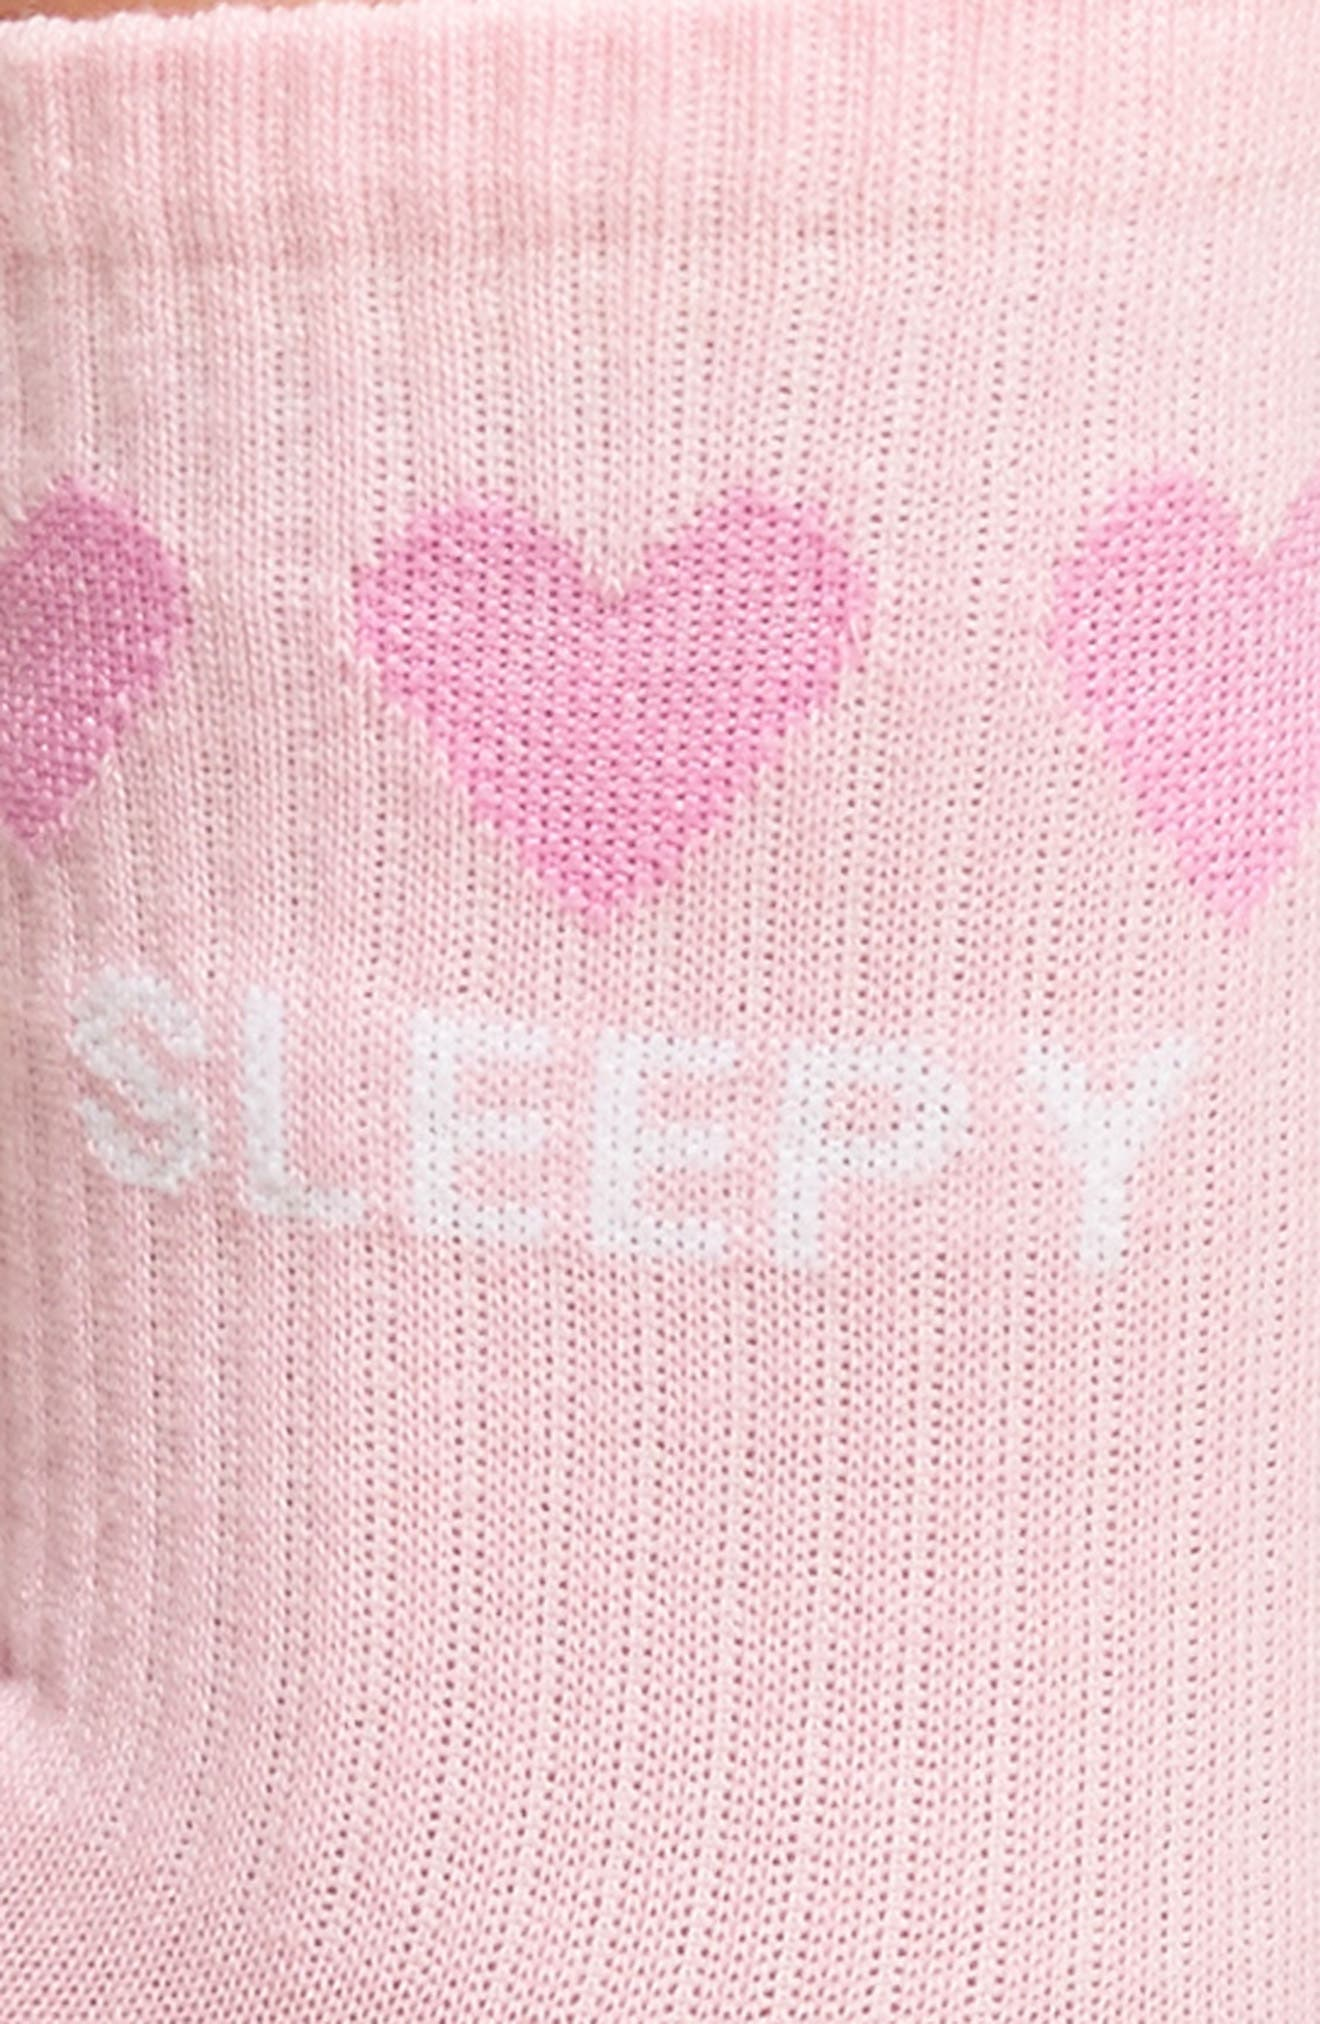 Sleepy Socks,                             Alternate thumbnail 2, color,                             650